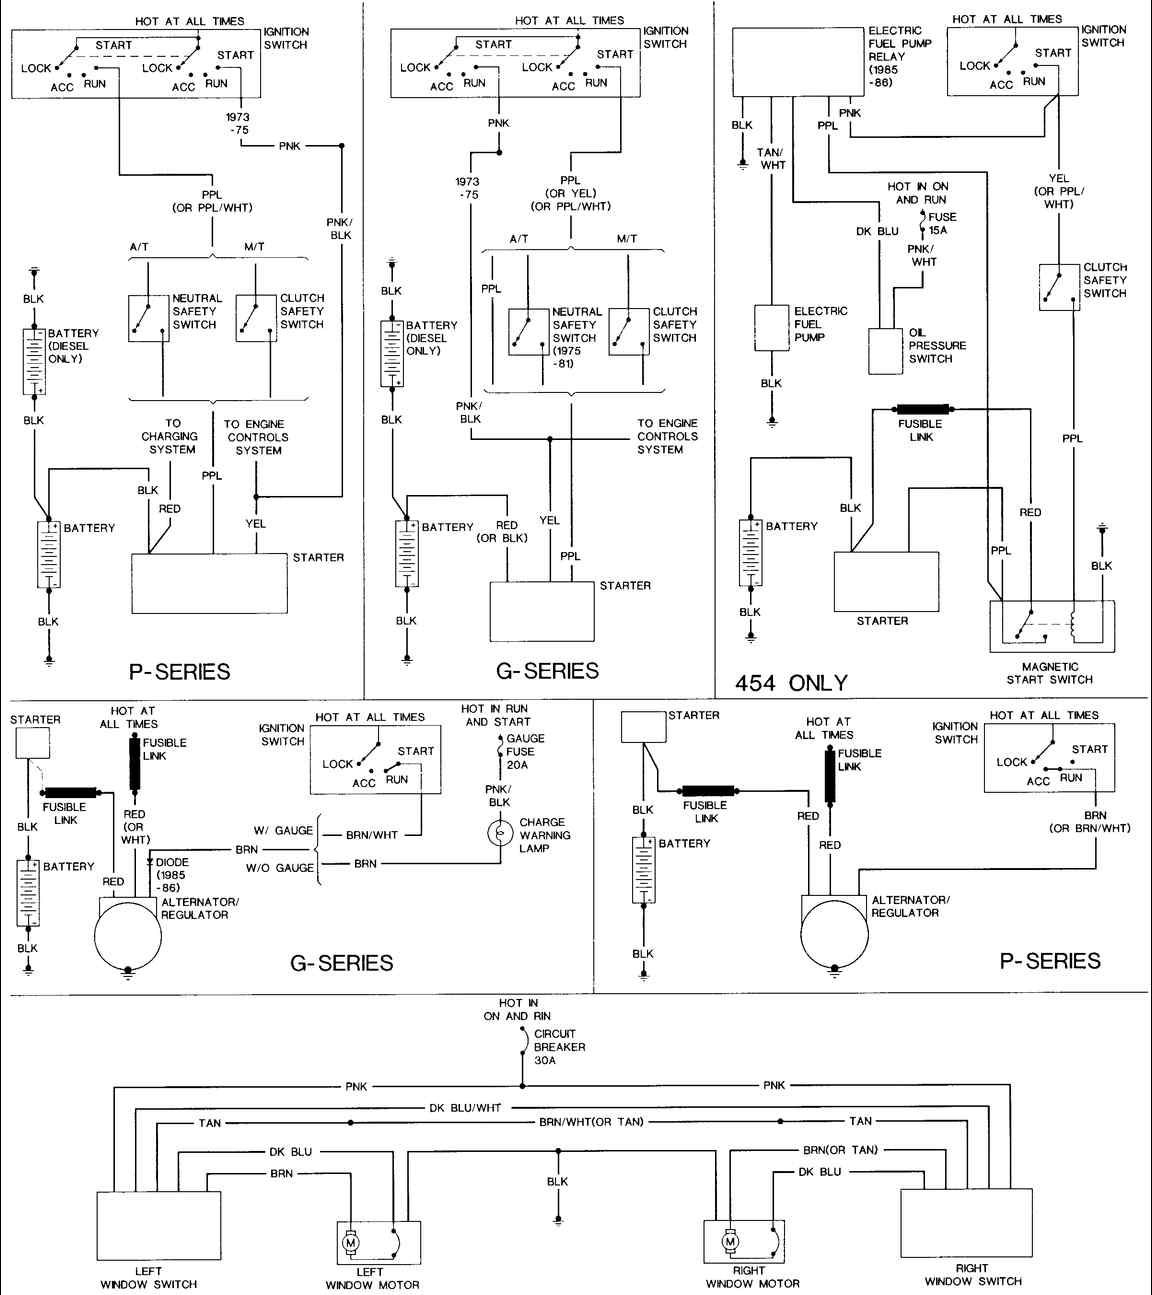 2003 Chevrolet Van Wiring Diagram. 2003 Chevrolet 3500